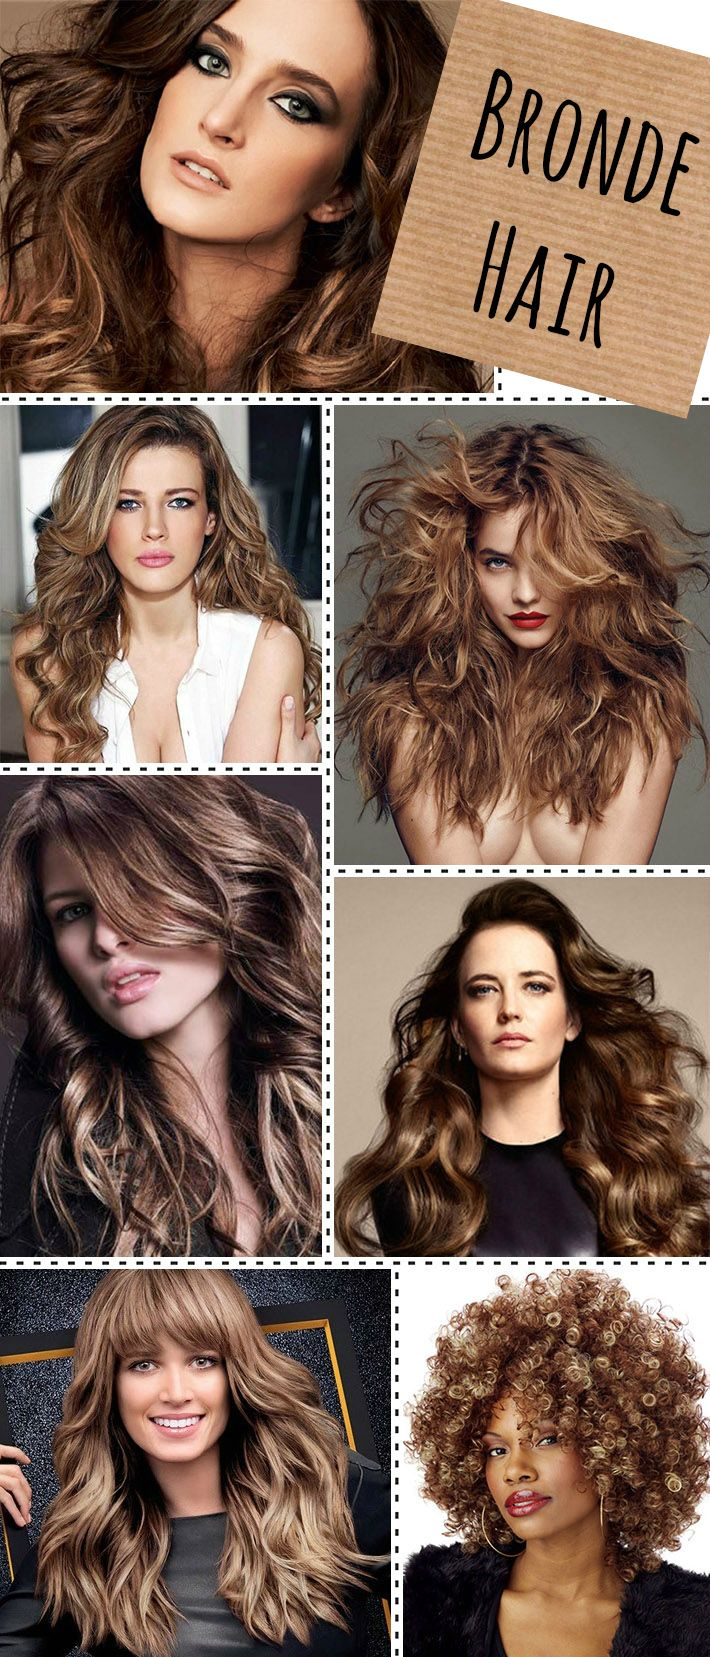 The hair color trend this year is all about the Bronde...not quite blonde, but not quite brunette. #hairtrend #edgesalon #hairstylistoviedo